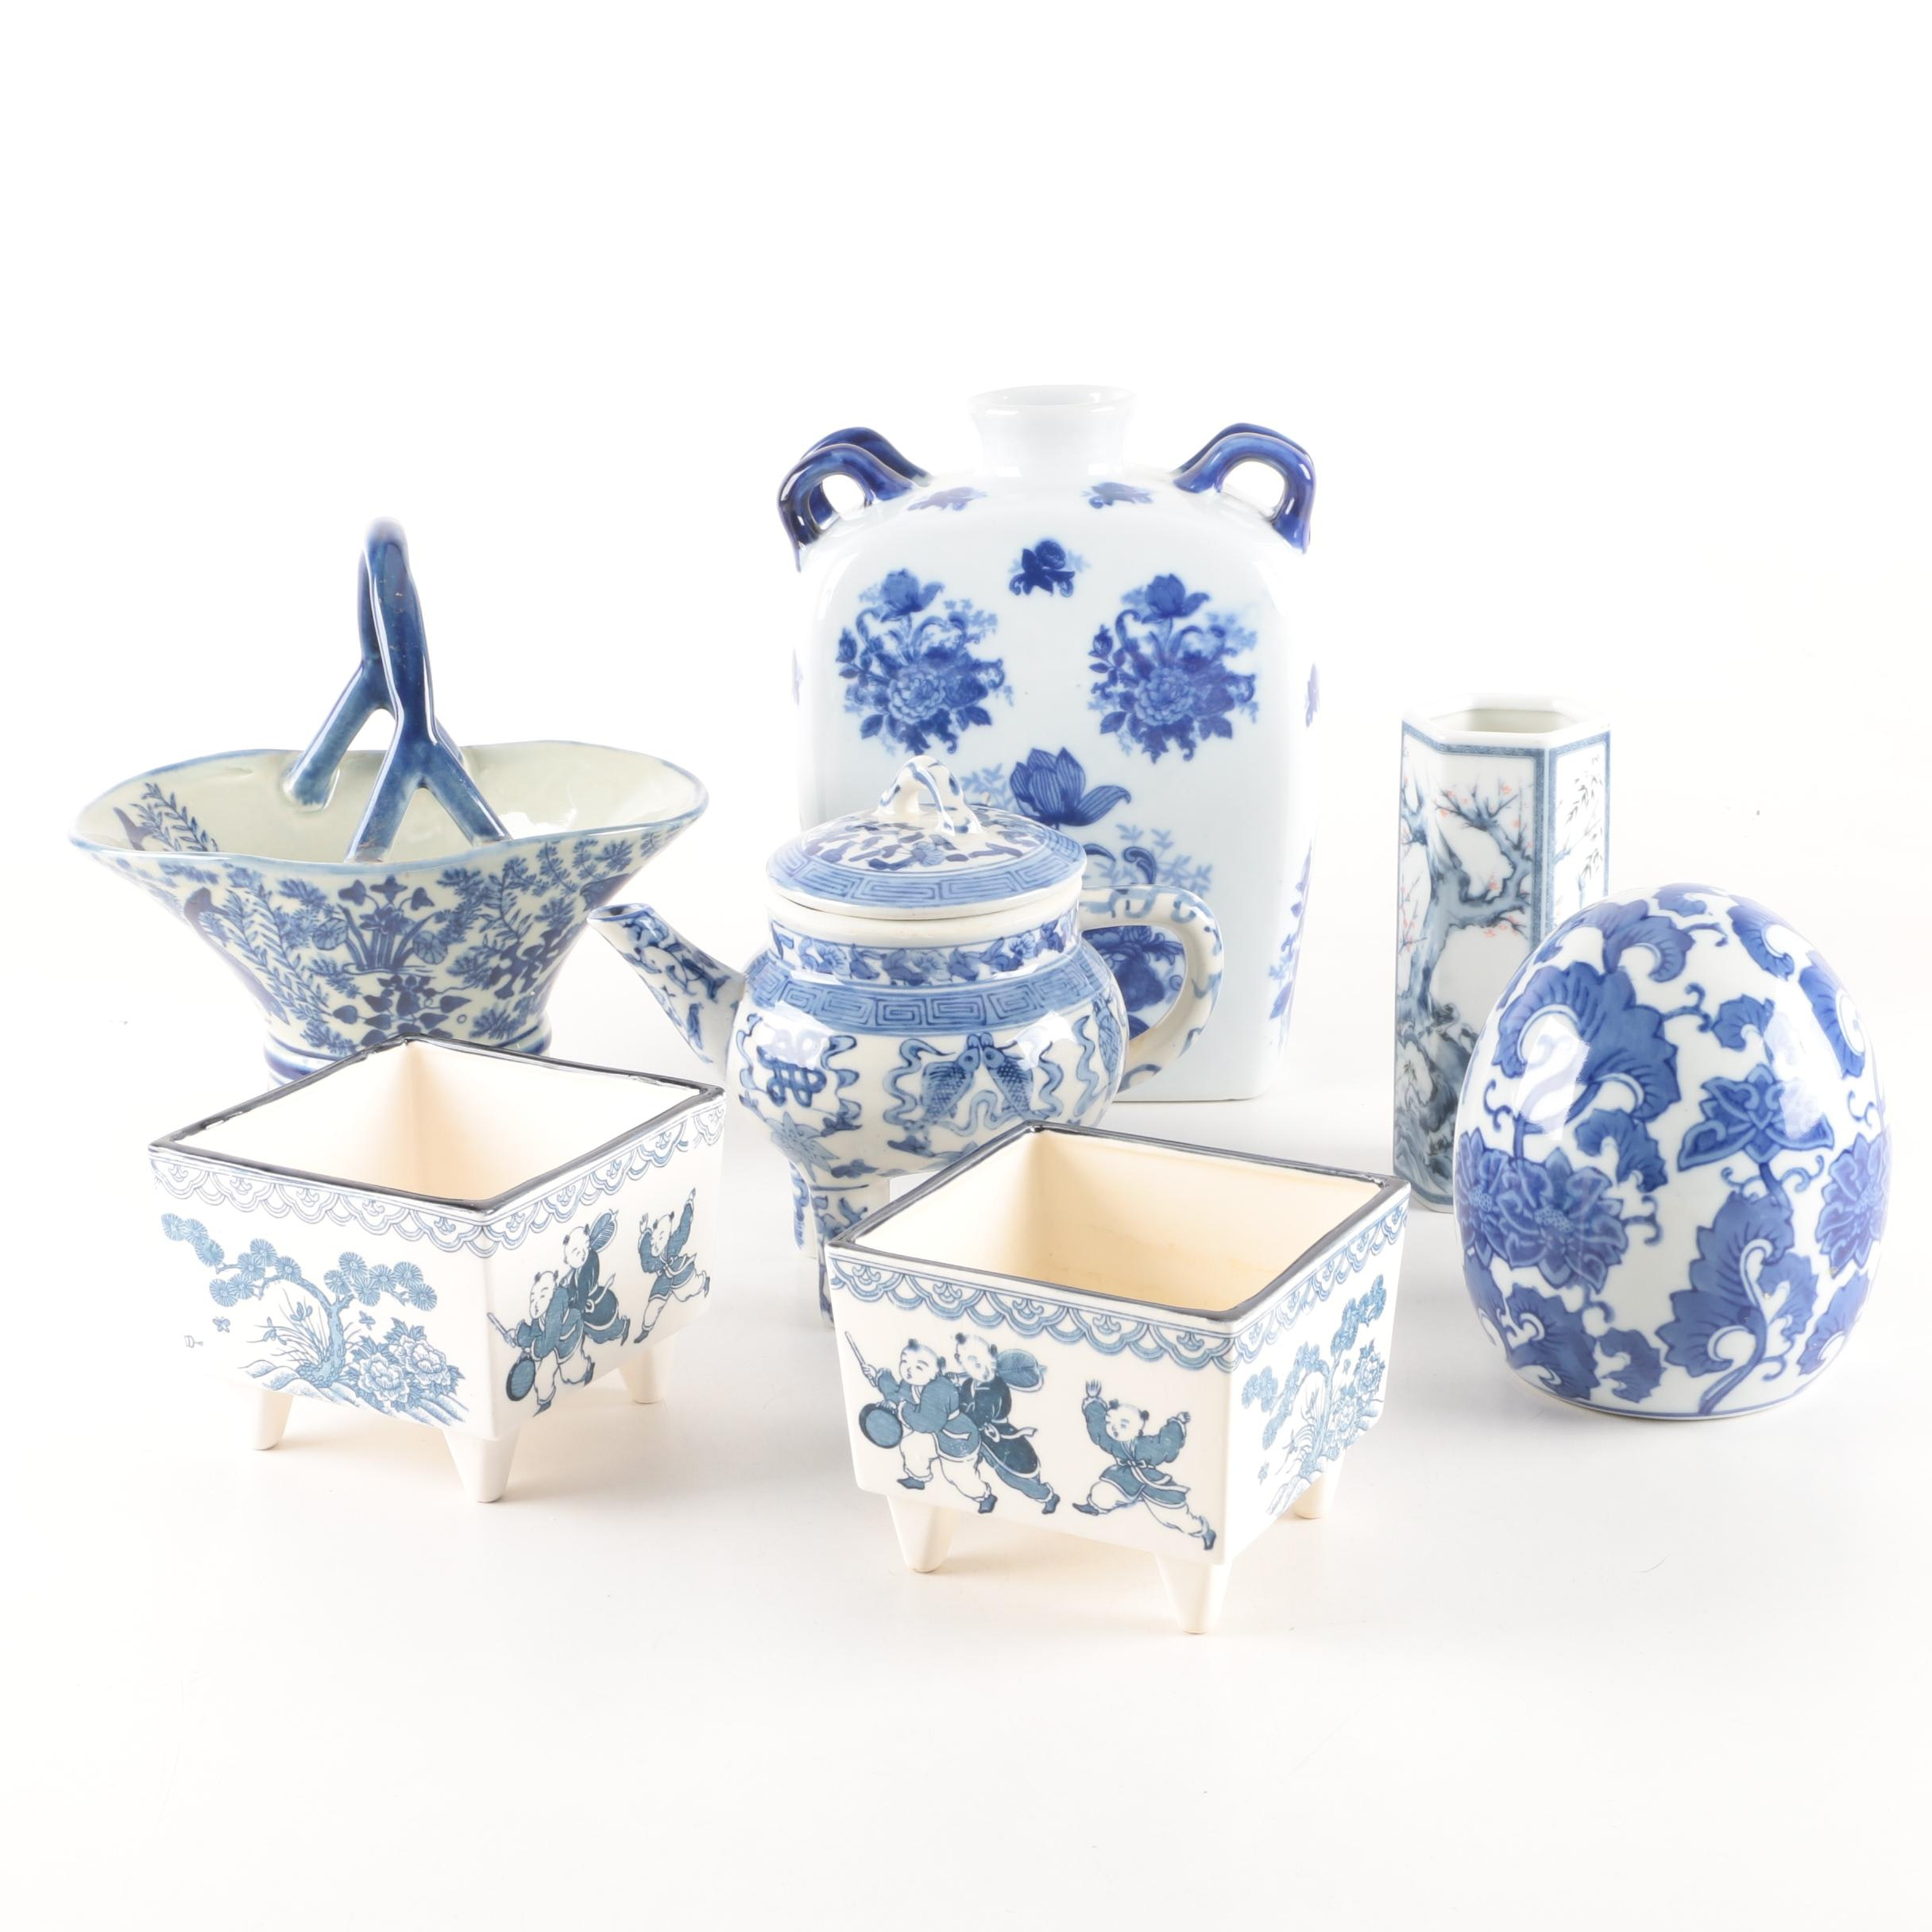 Blue and White Decorative Chinese Accessories